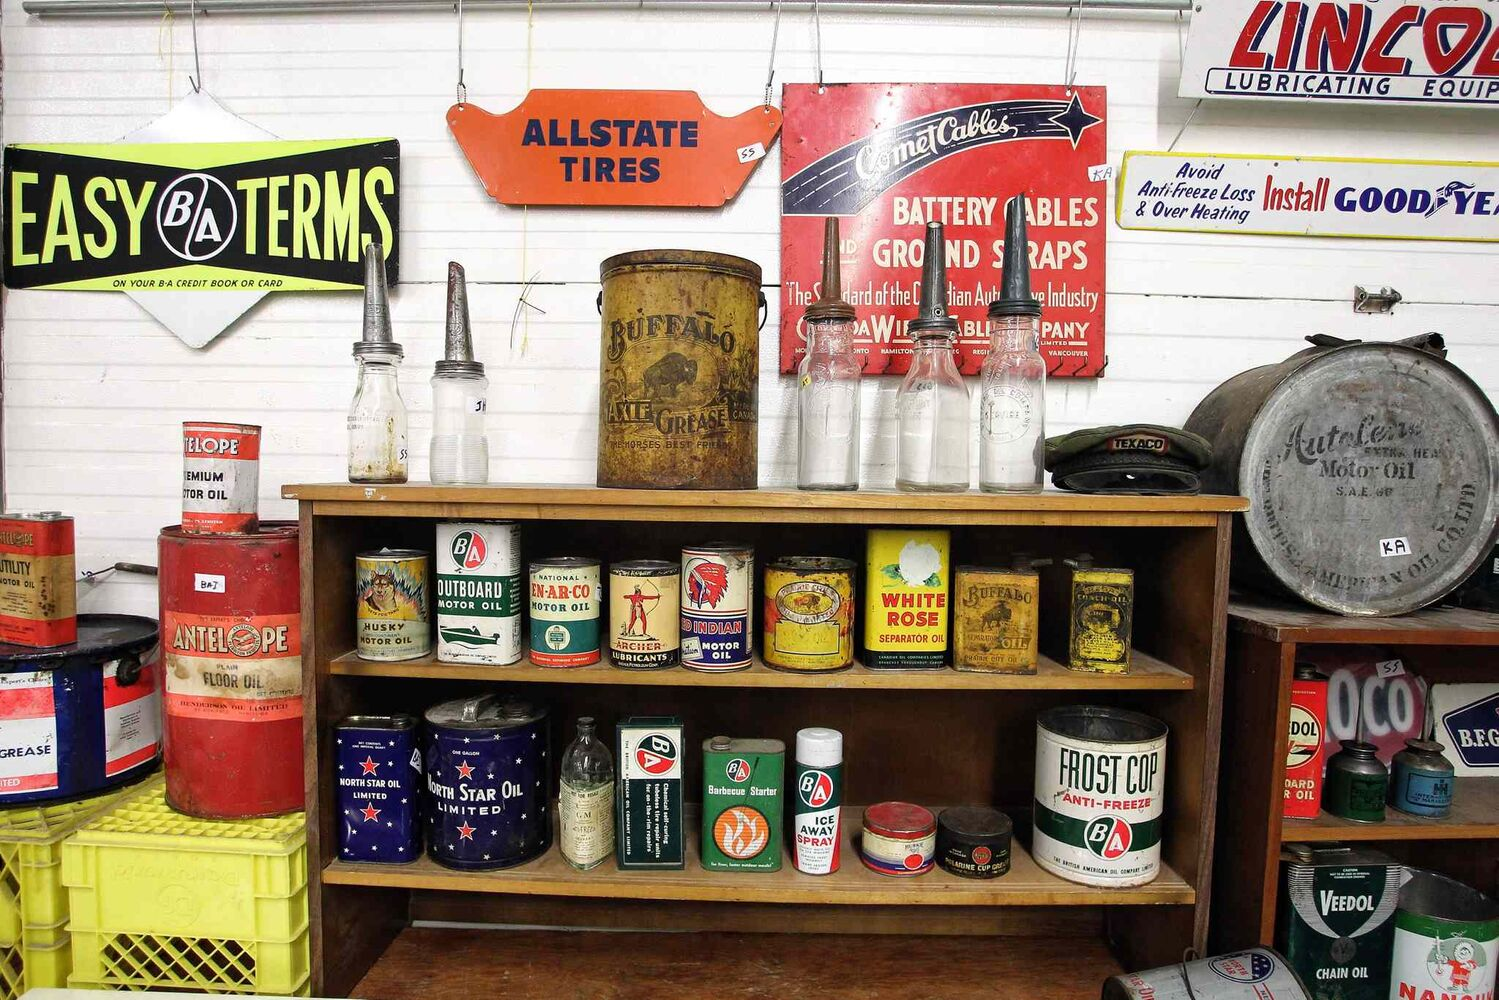 Old canisters of motor oil, axle grease, antifreeze and more are included in the auction.